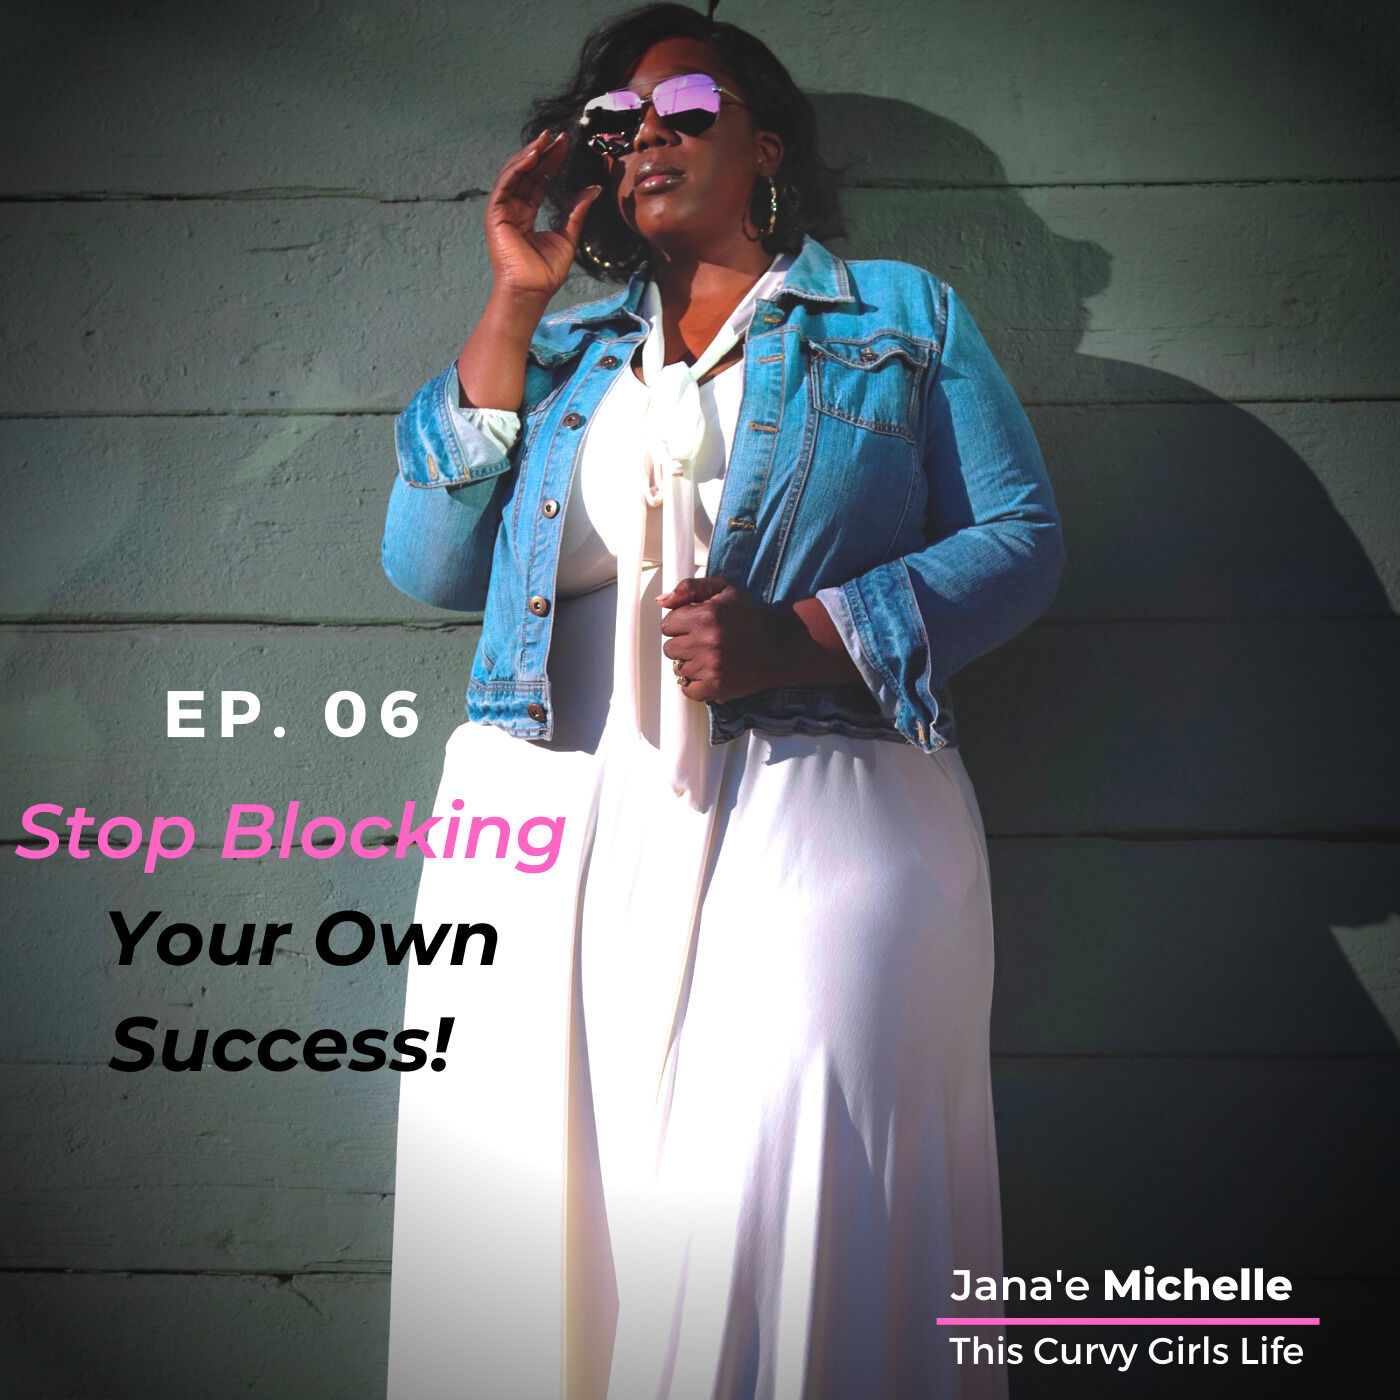 Stop blocking your own success!